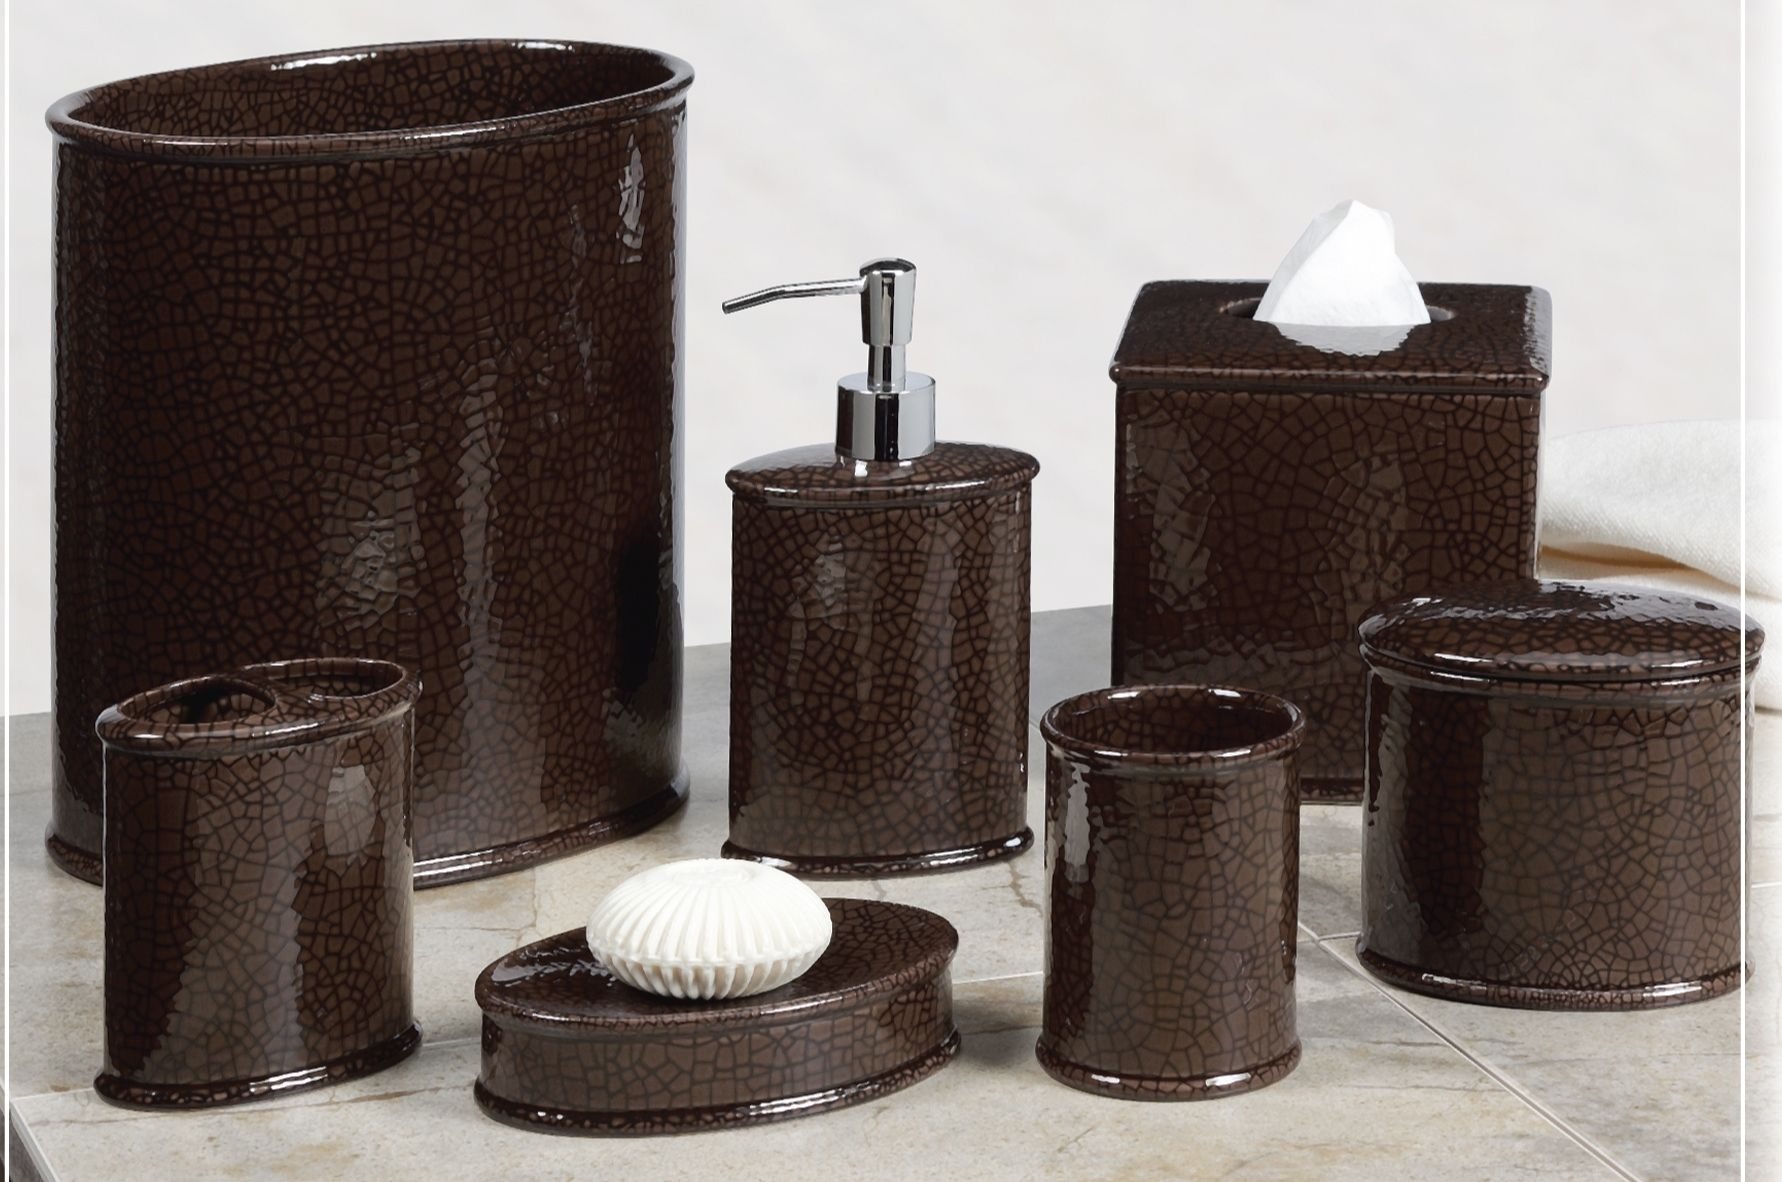 Bathaccessories Creative Bath Crackle Brown Ceramic Bathroom